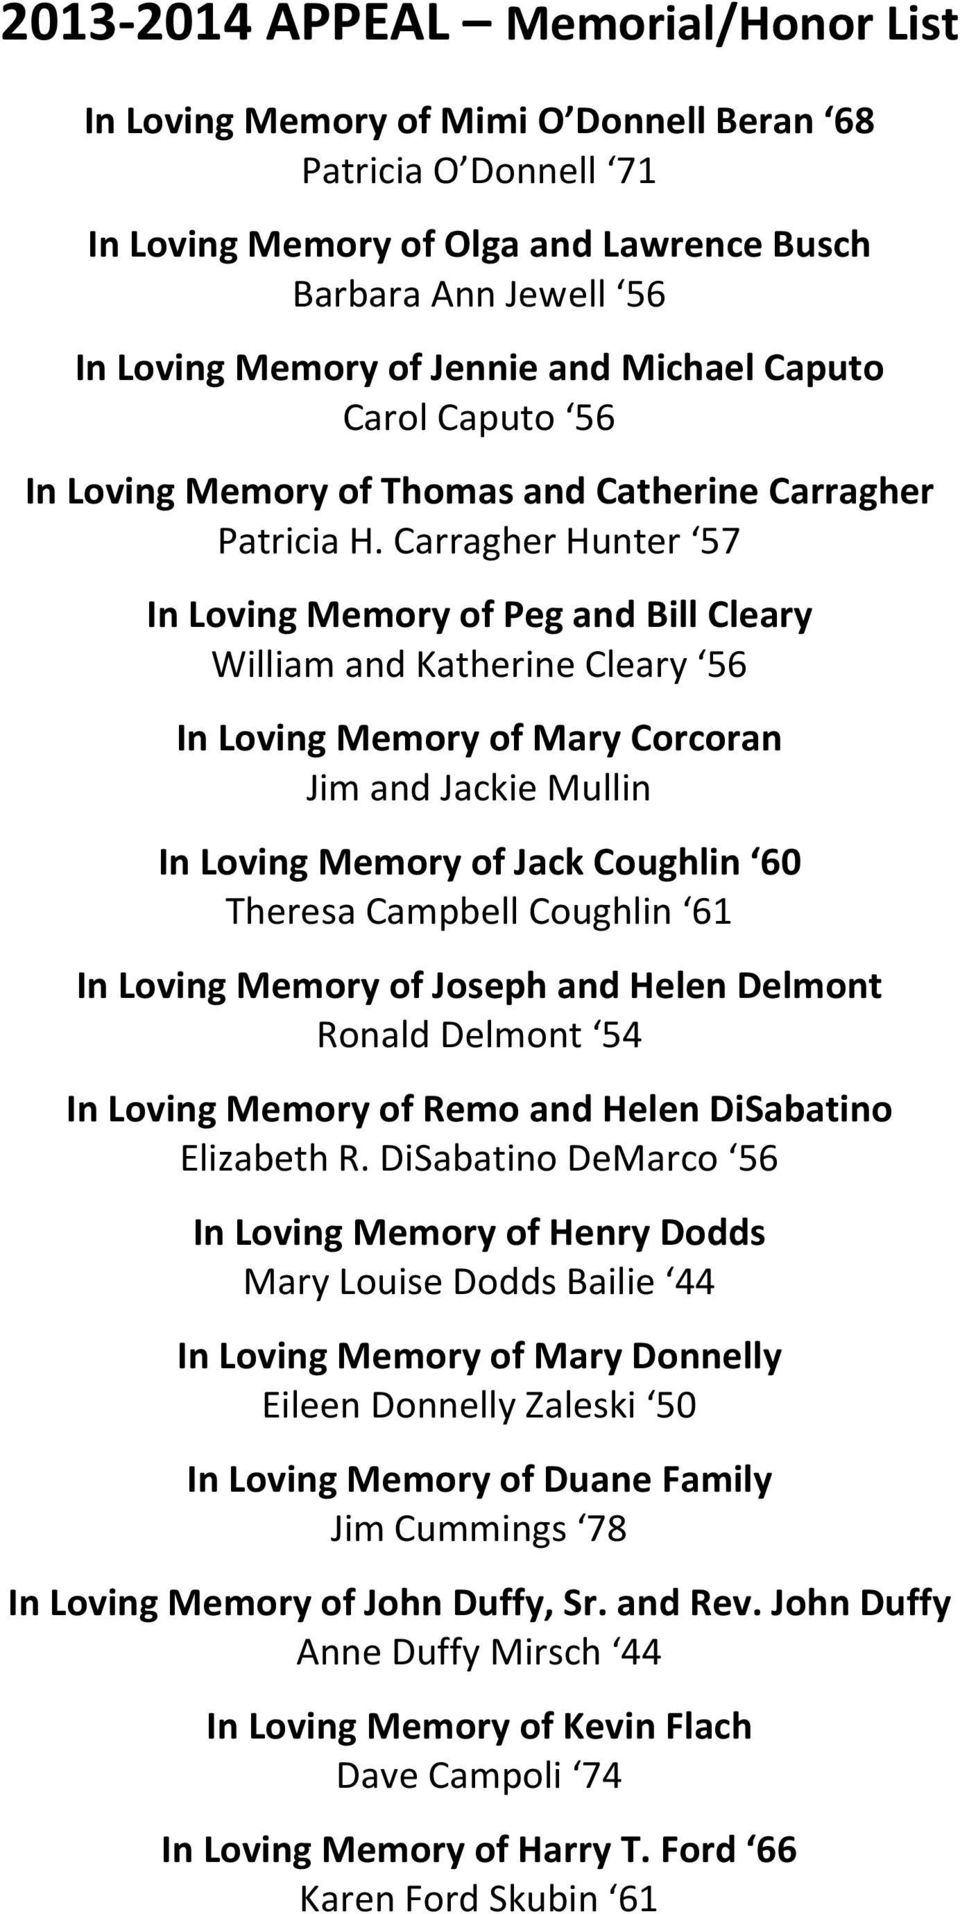 Carragher Hunter 57 In Loving Memory of Peg and Bill Cleary William and Katherine Cleary 56 In Loving Memory of Mary Corcoran Jim and Jackie Mullin In Loving Memory of Jack Coughlin 60 Theresa